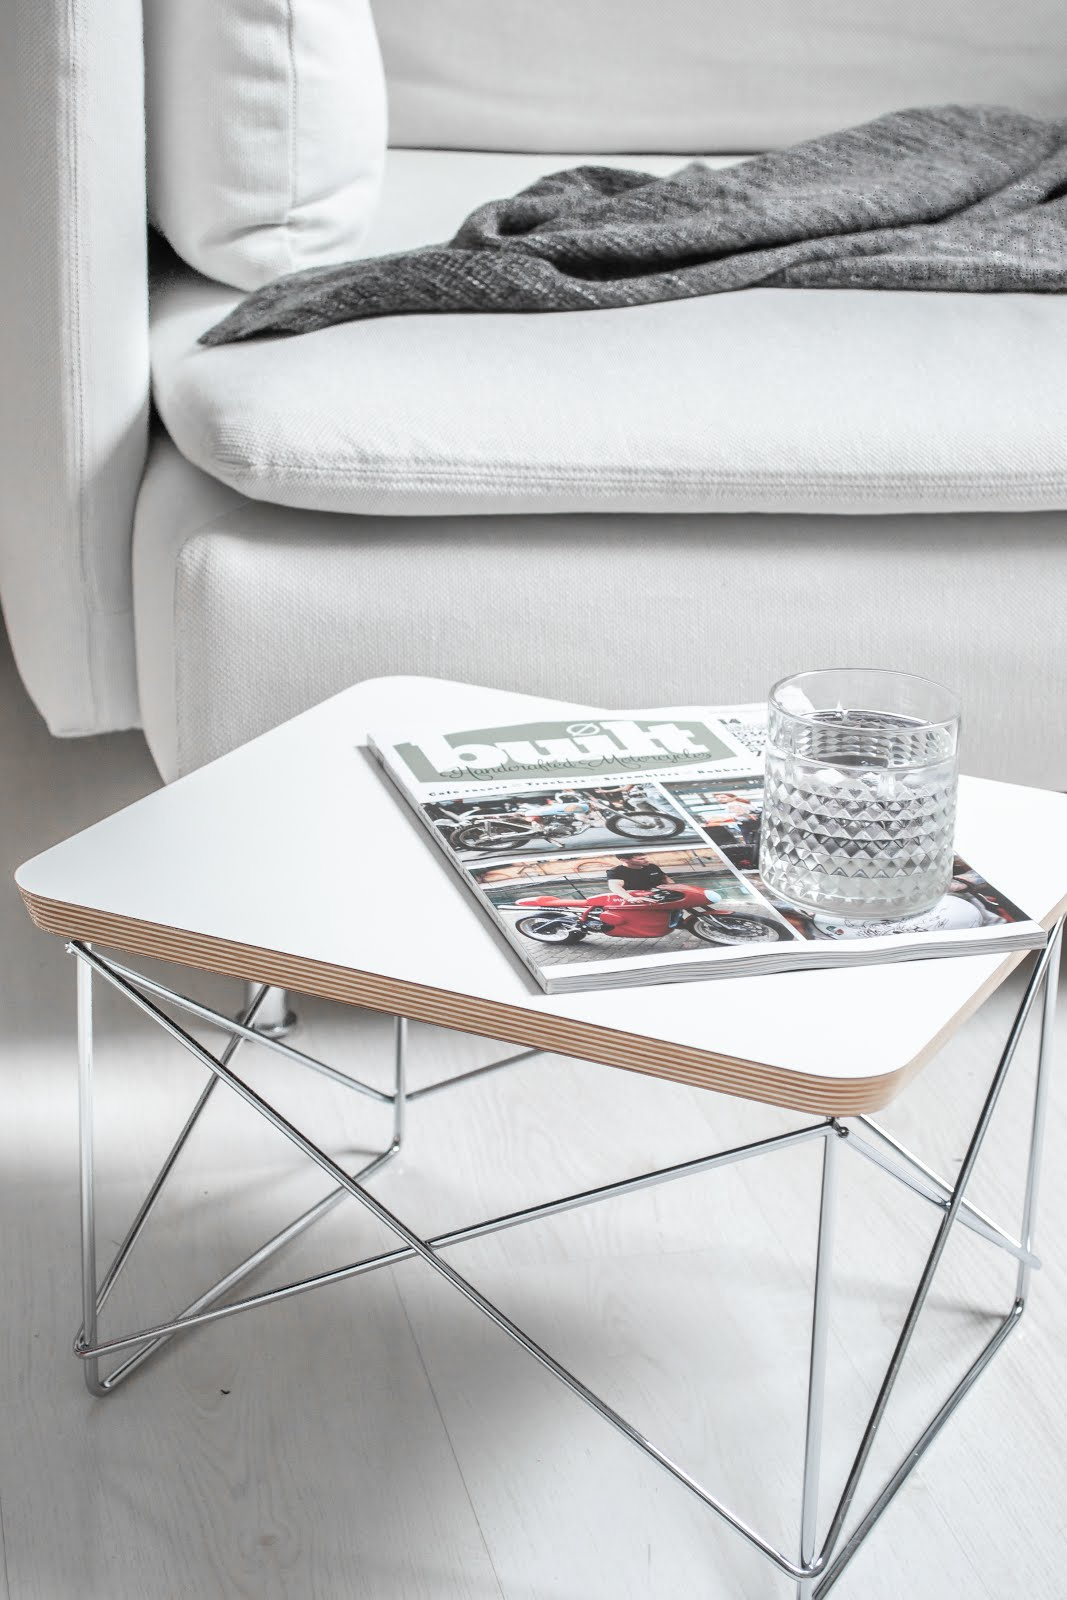 Vitra LTR table, charles ray eames, flinders, interior design, minimal interior, salon tafel, side table, occasional table, Low Table Rod Base